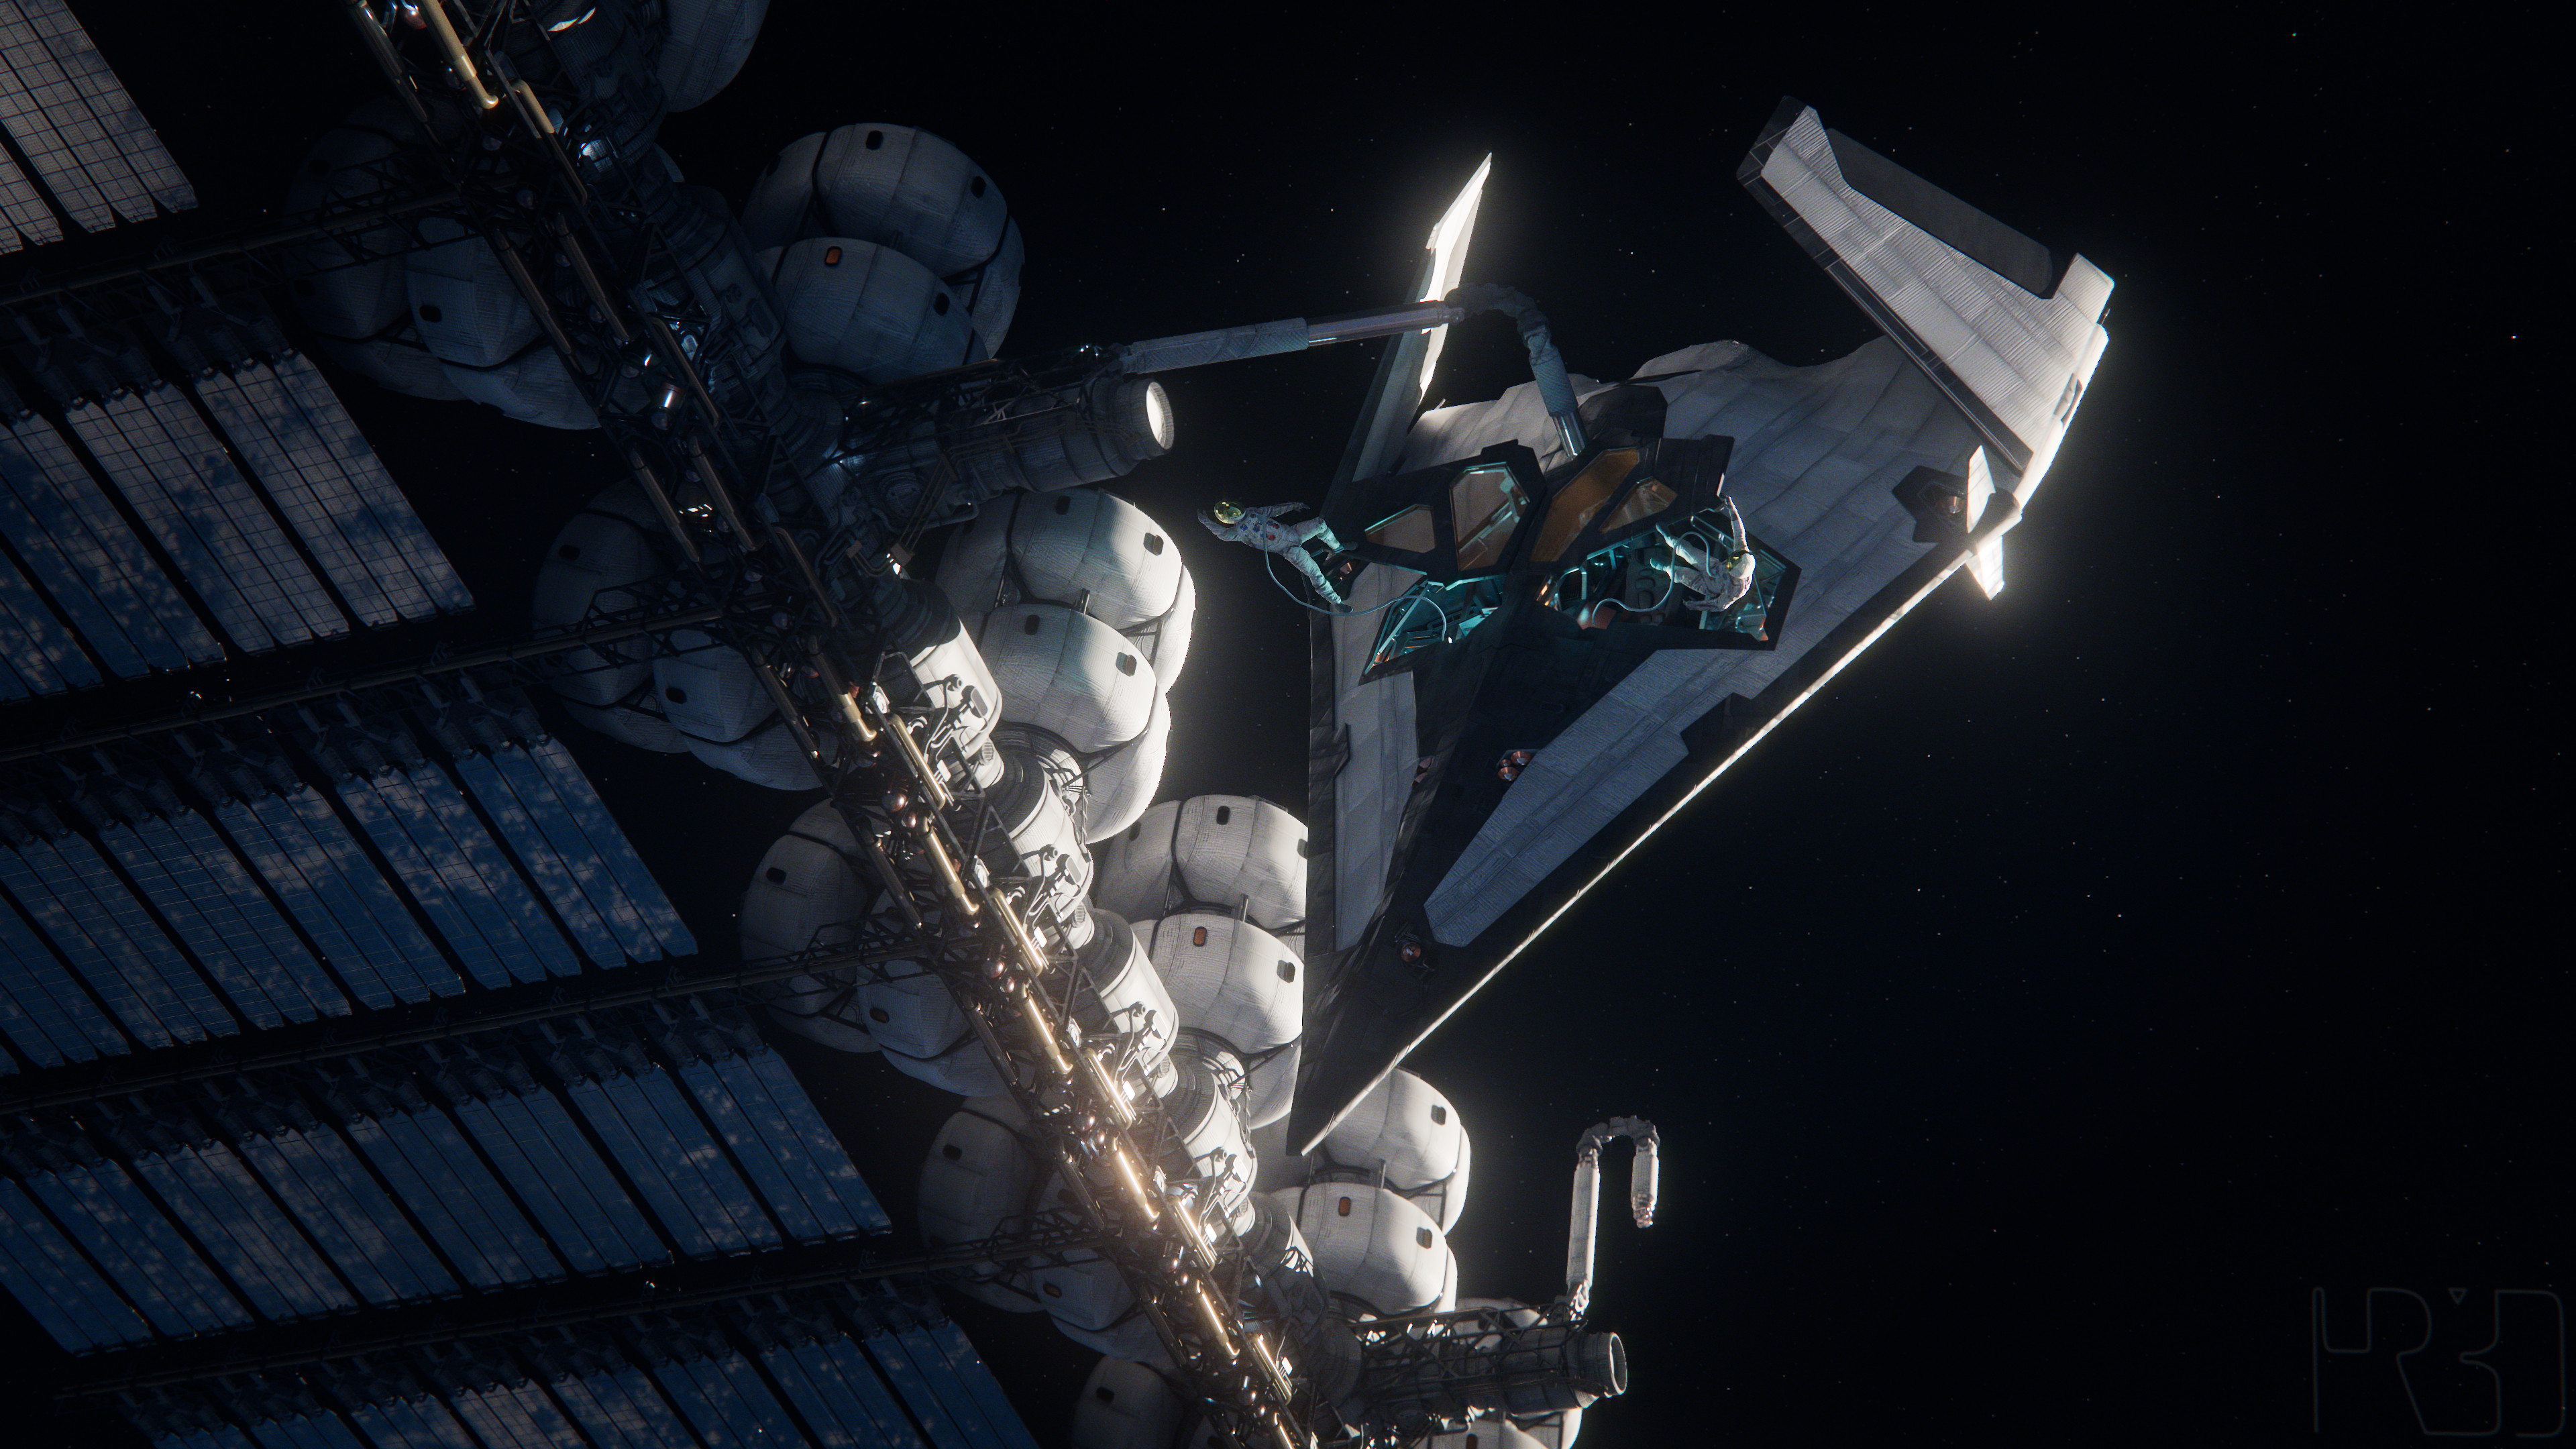 Docking at the space station